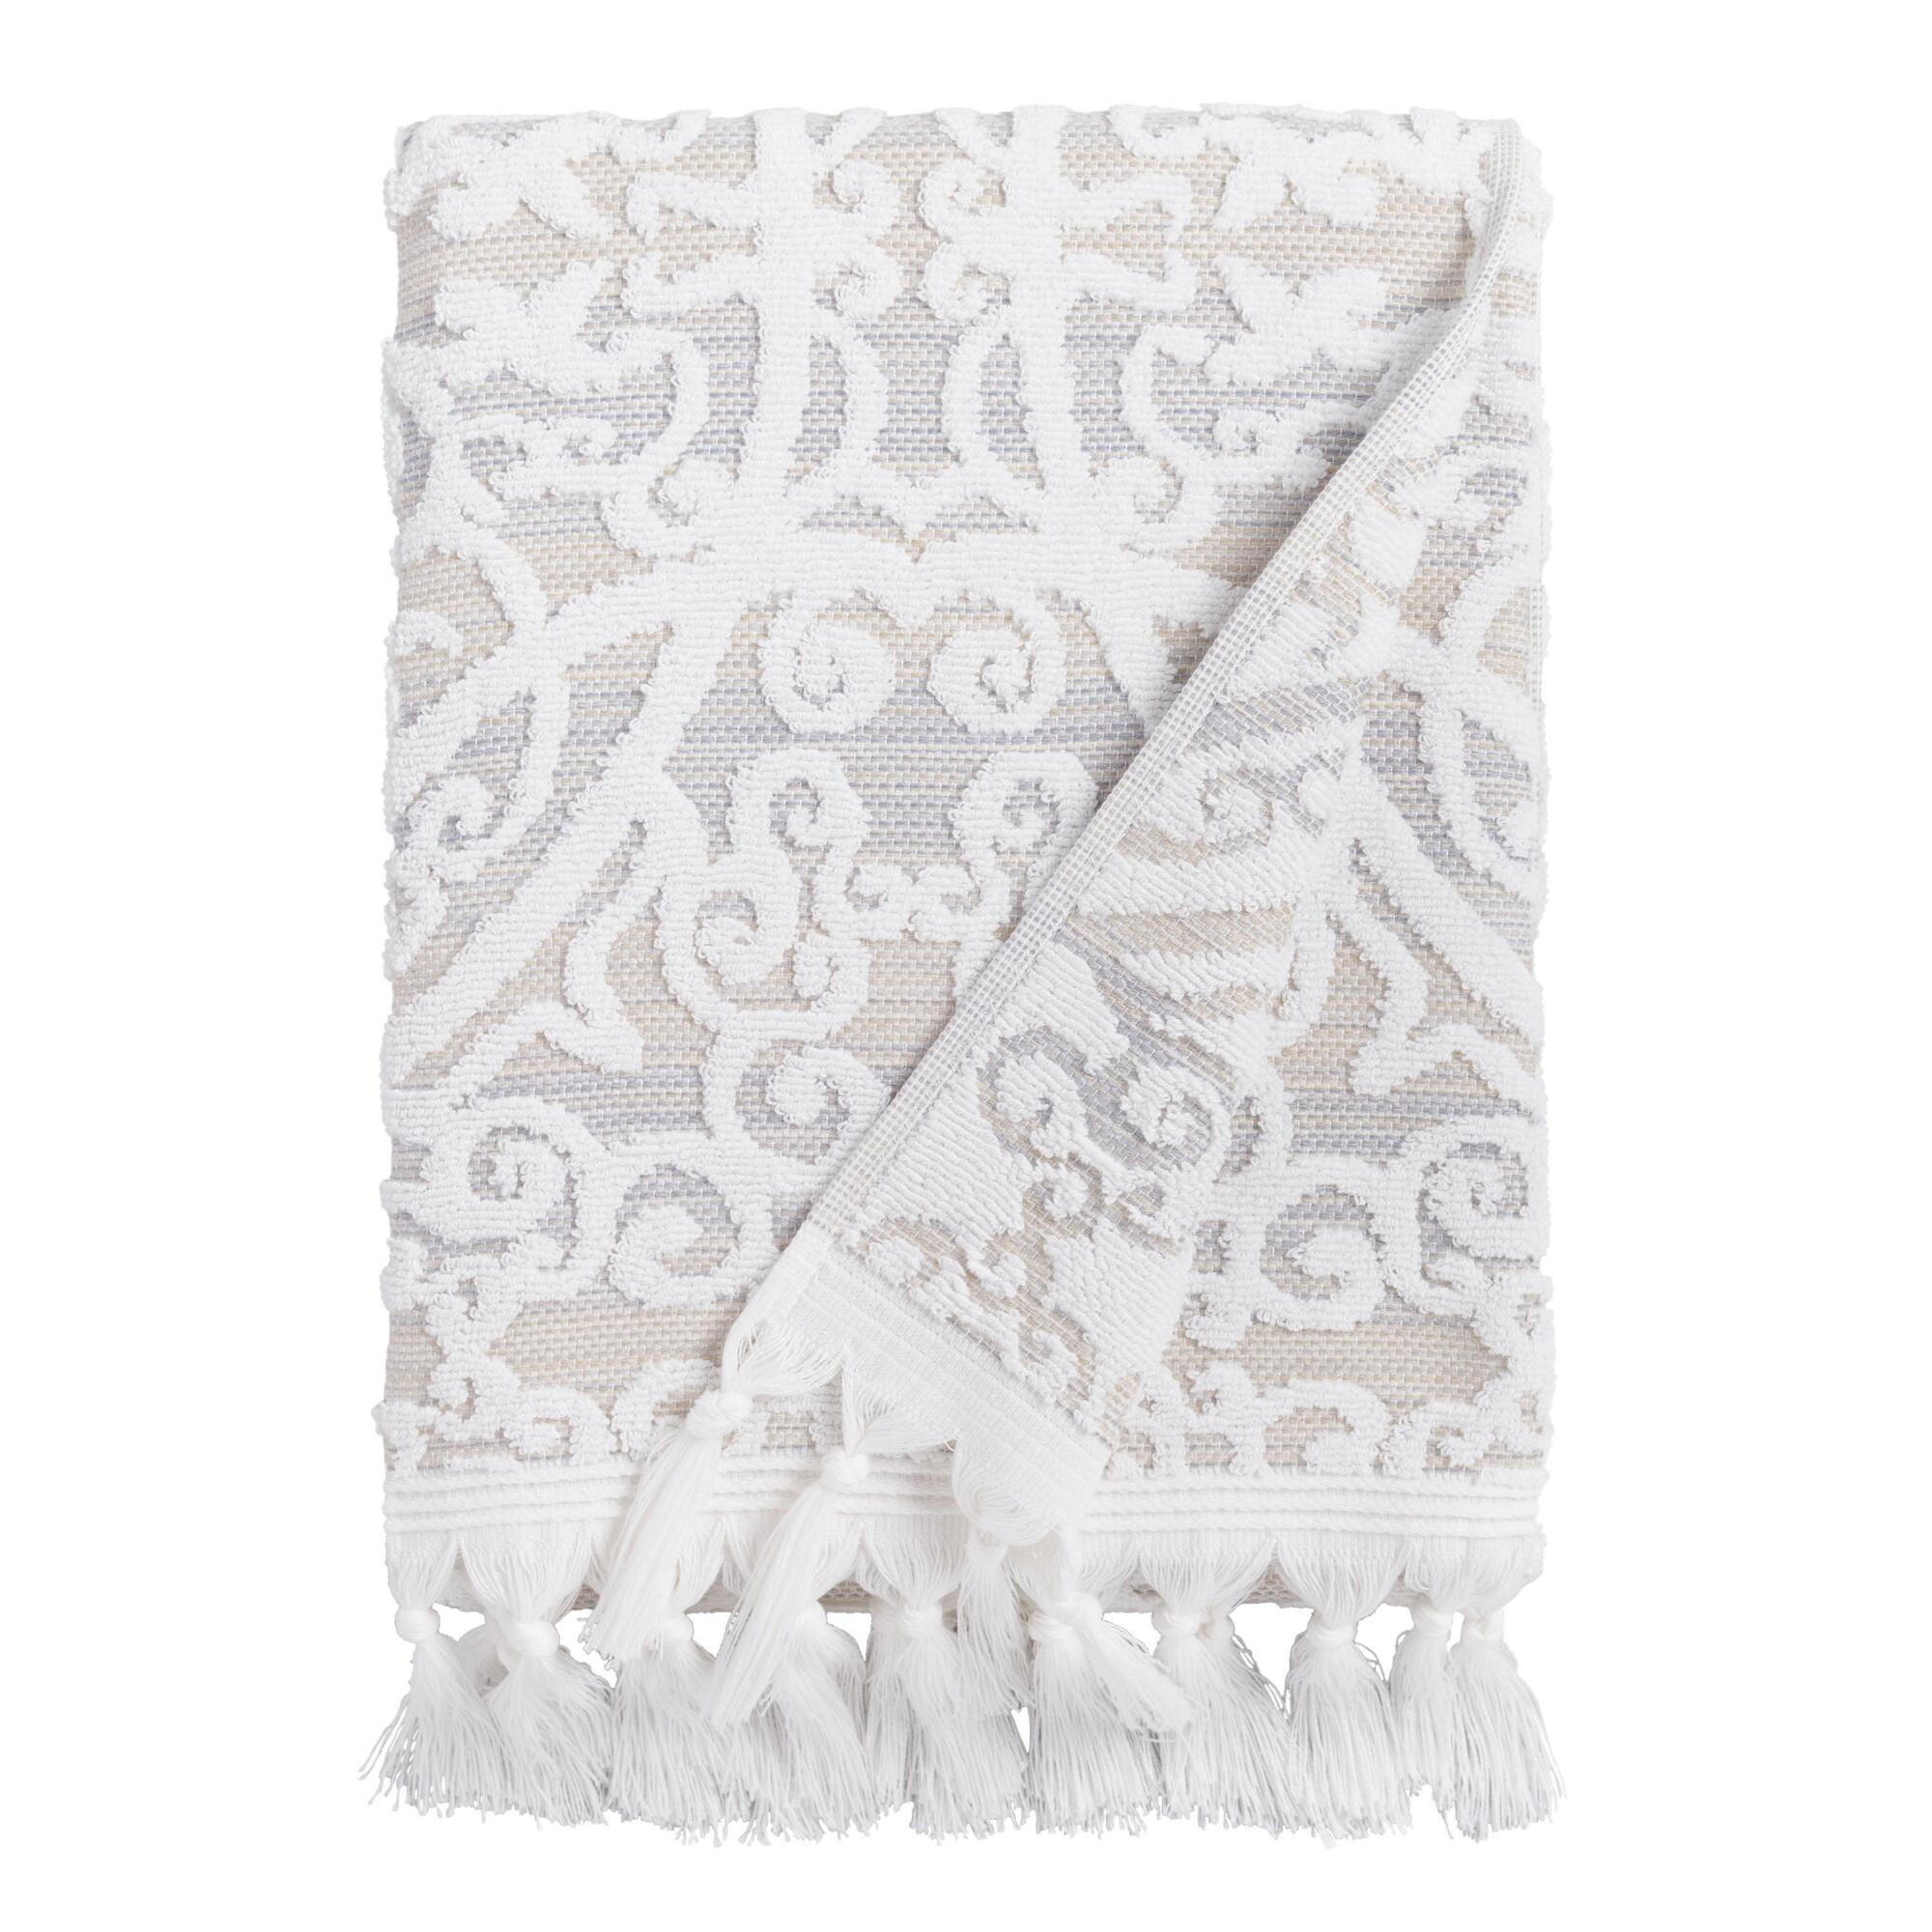 Taupe Medallion Scarlett Sculpted Bath Towel: Gray - Cotton by World Market